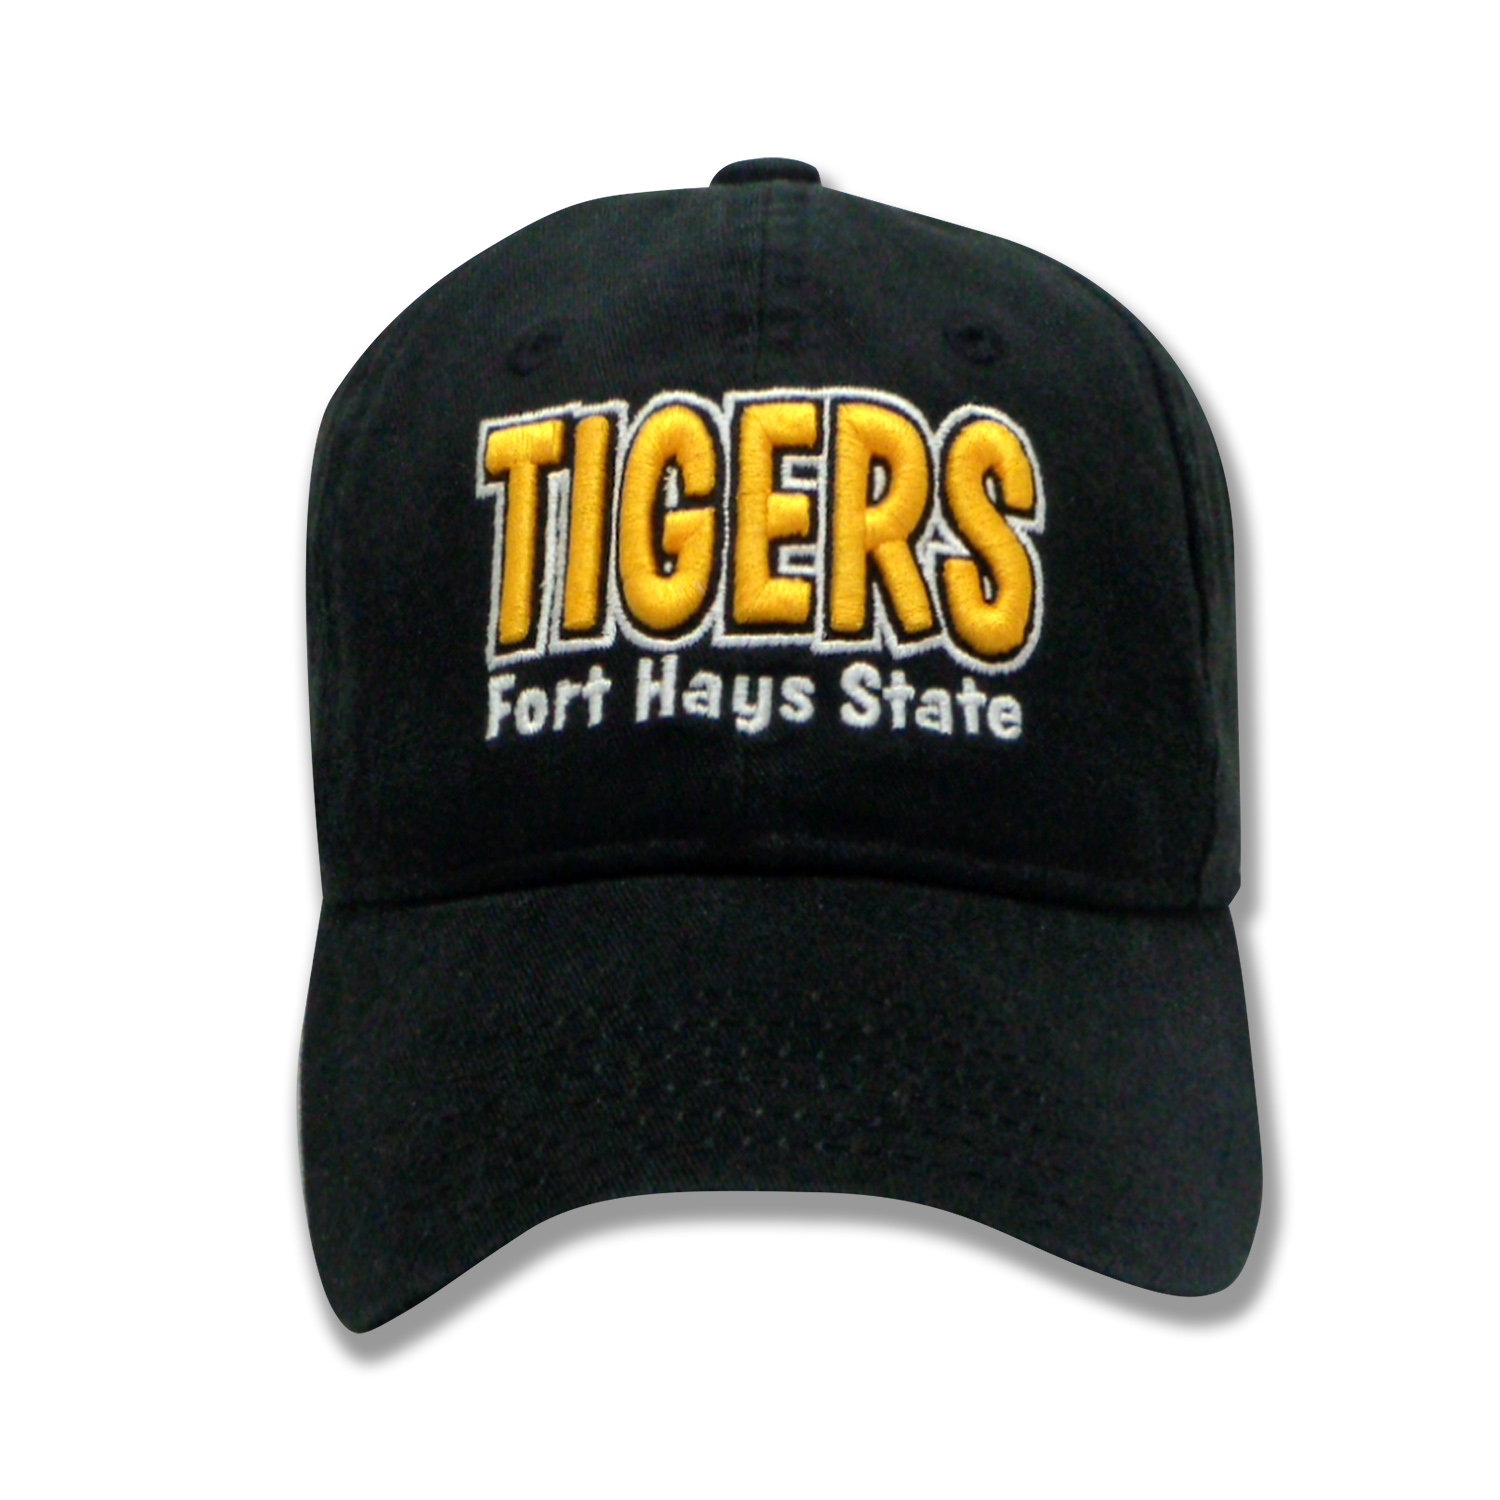 Image for the Tigers Fort Hays State Youth Hat, Slide Buckle Closure, Black, The Game product